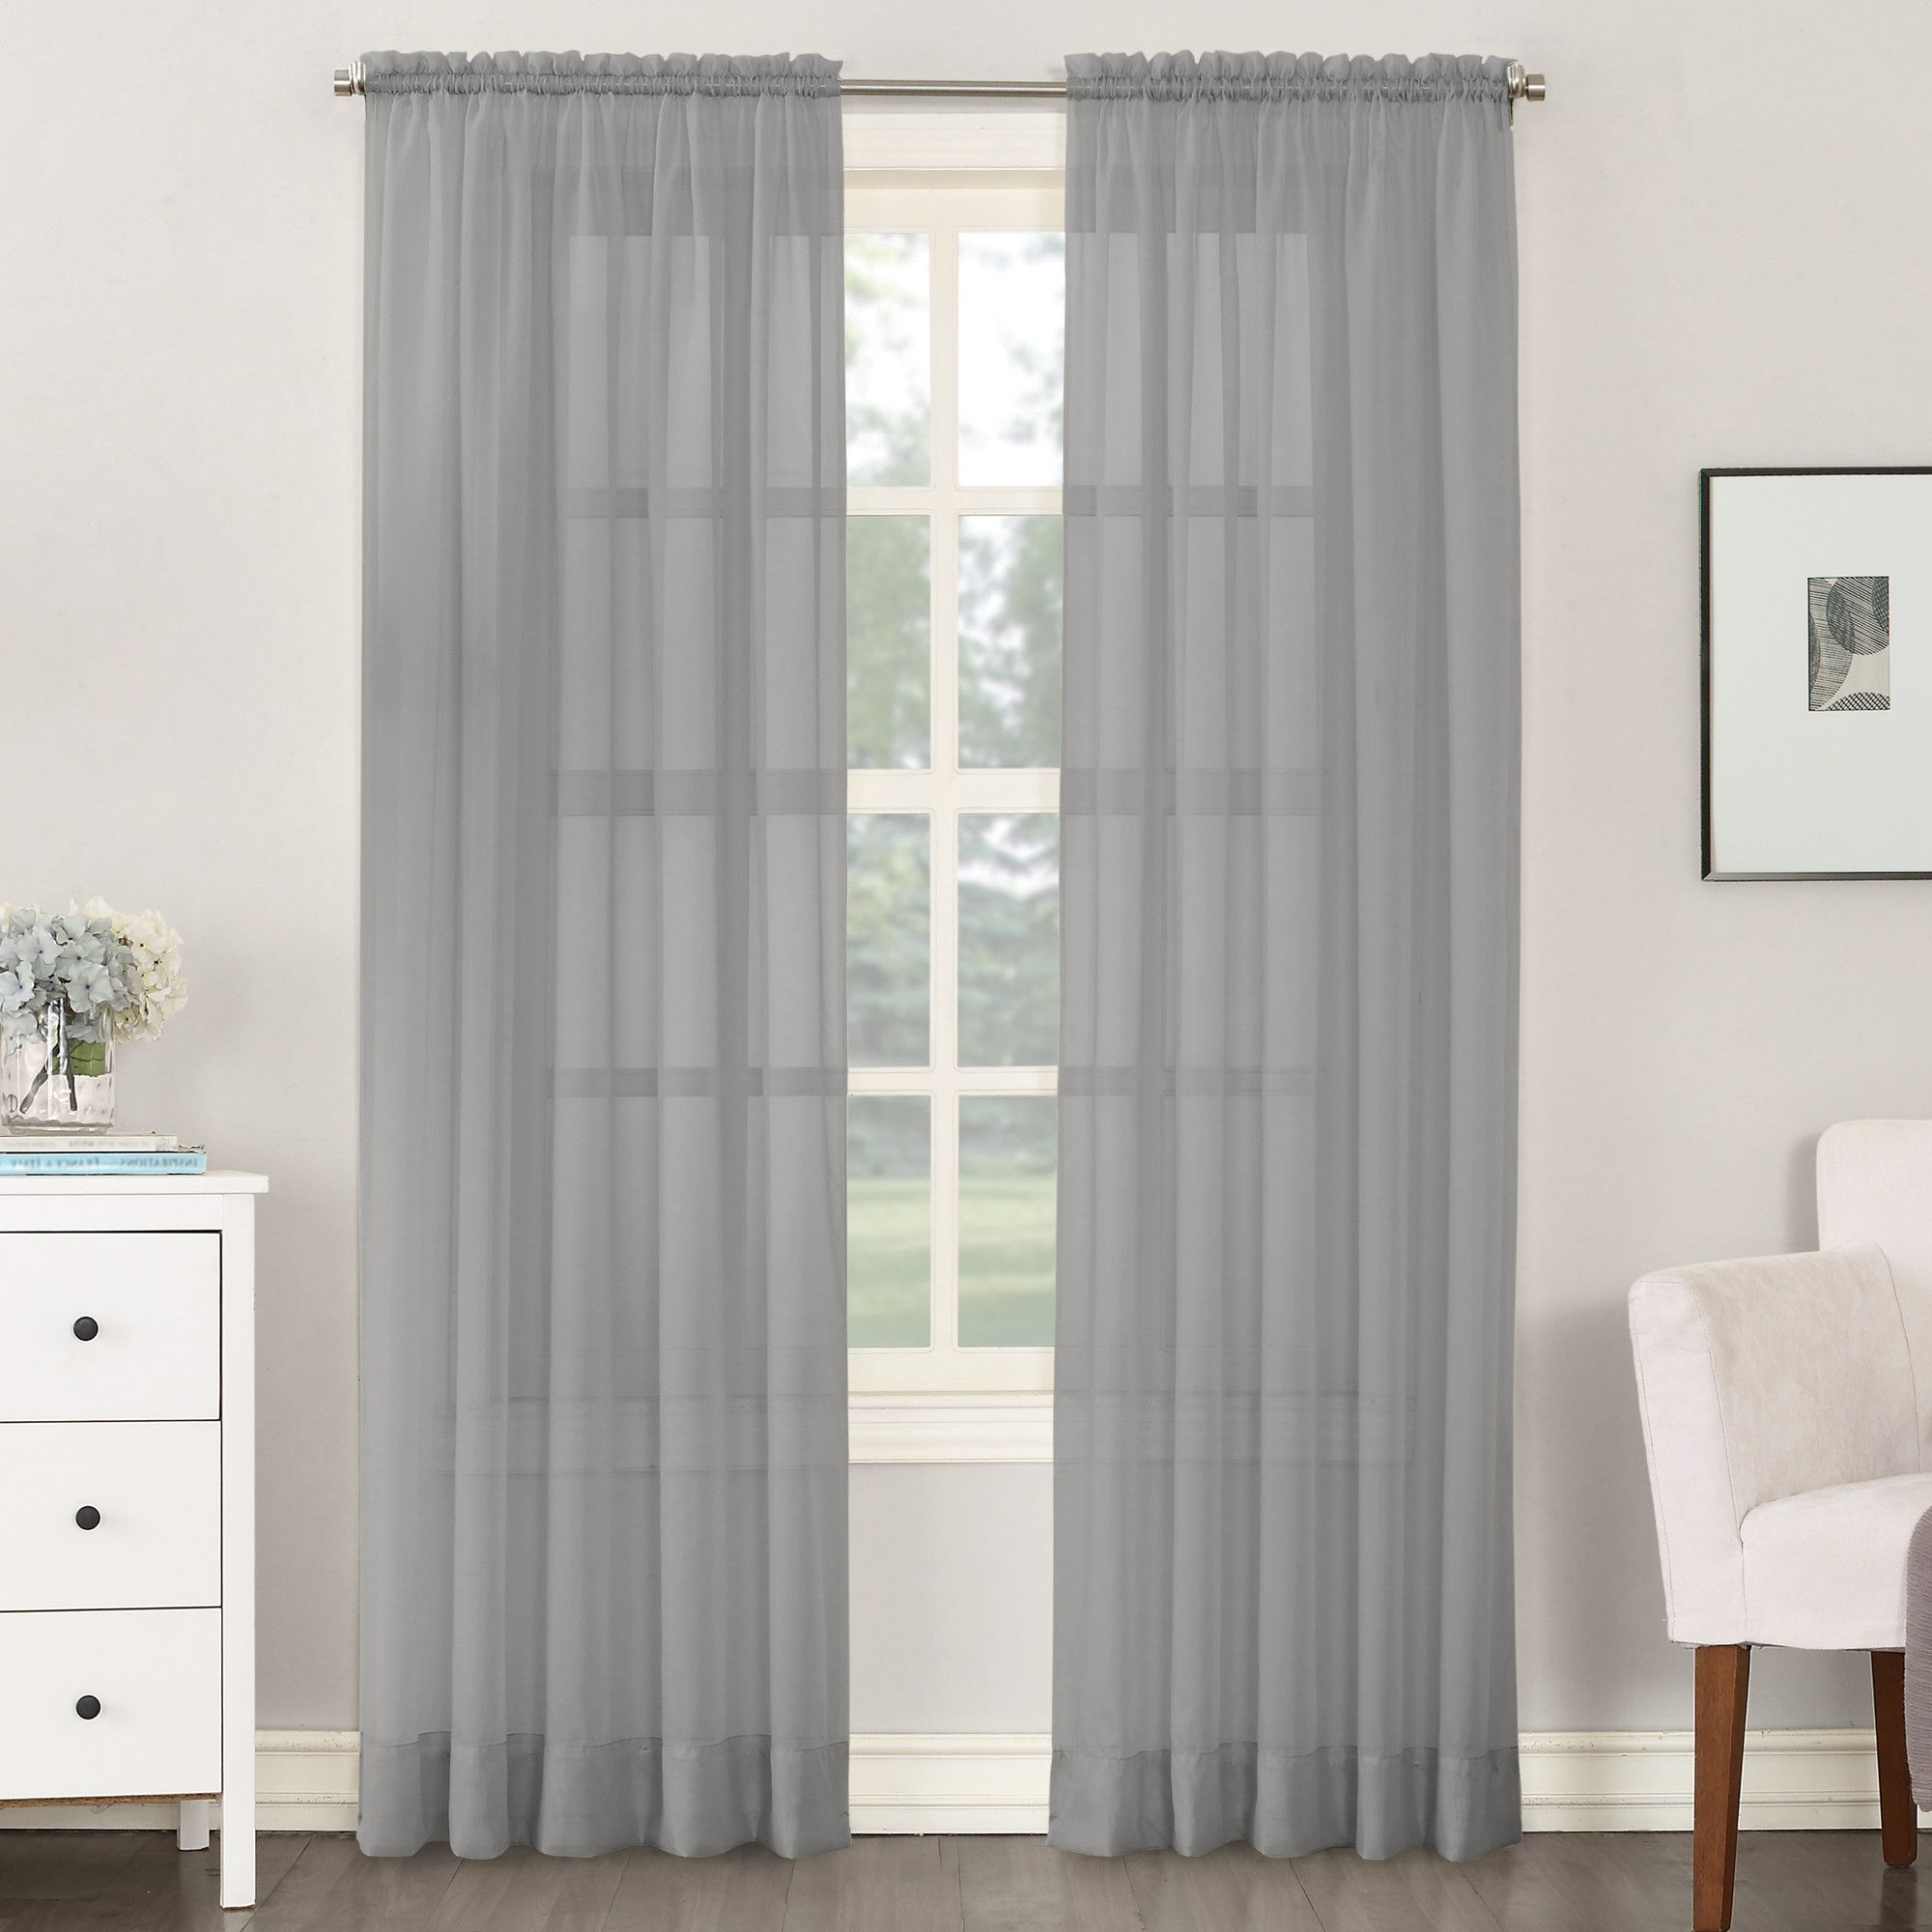 Overseas Leaf Swirl Embroidered Curtain Panel Pairs Regarding 2021 Sheer Voile Solid Rod Pocket Single Curtain Panel (View 12 of 21)